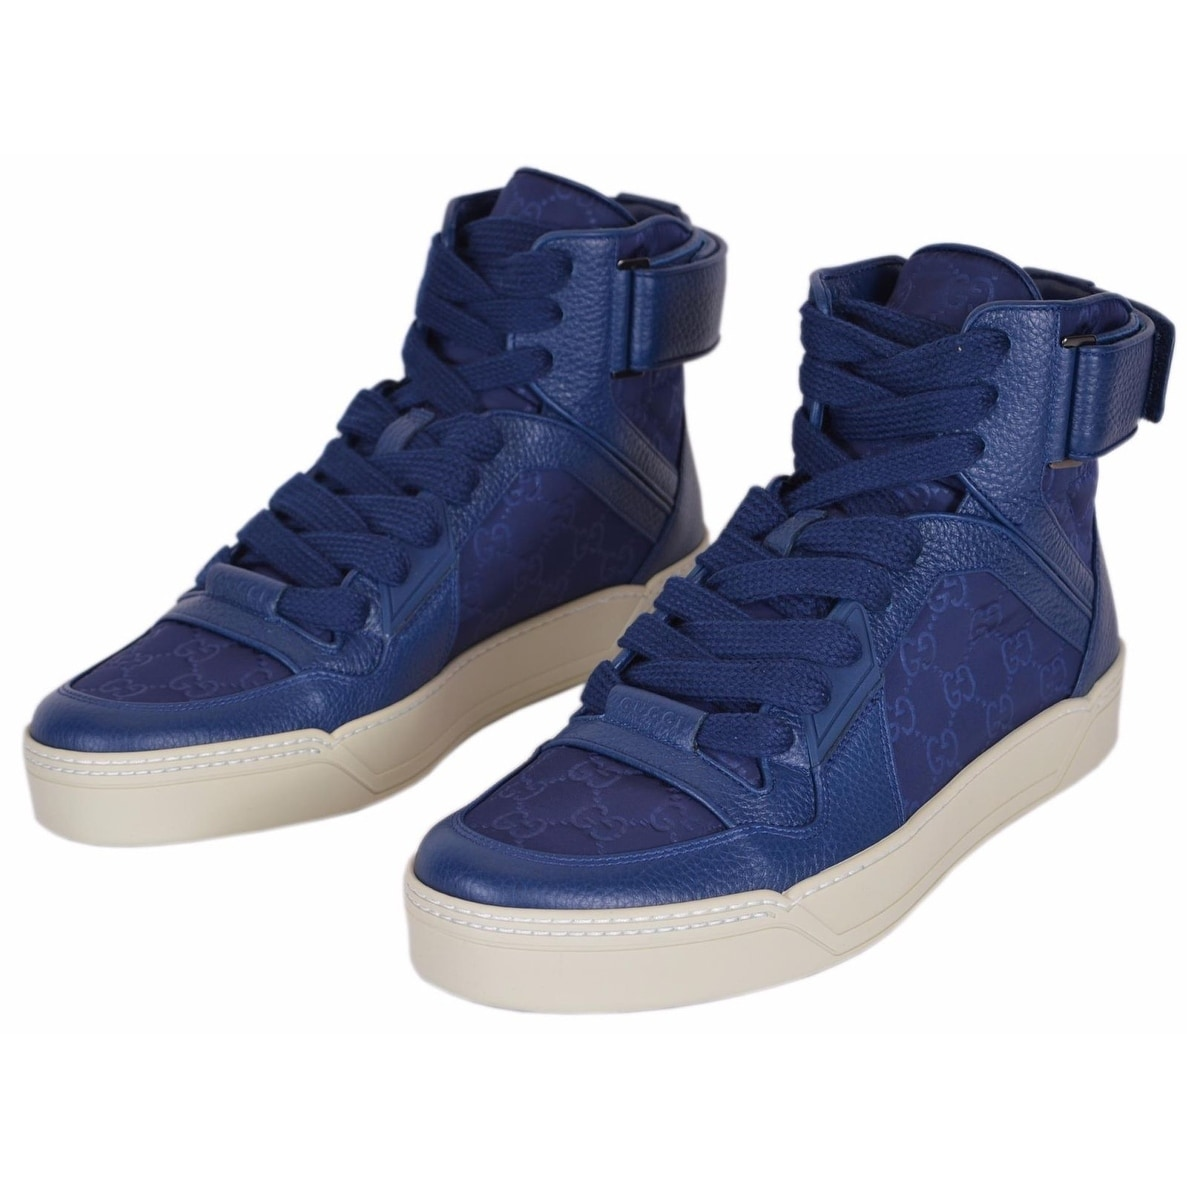 26b9f47fa Shop Gucci Men's Blue Nylon GG Guccissima High Top Sneakers Trainers Shoes  8 - Free Shipping Today - Overstock - 19475337